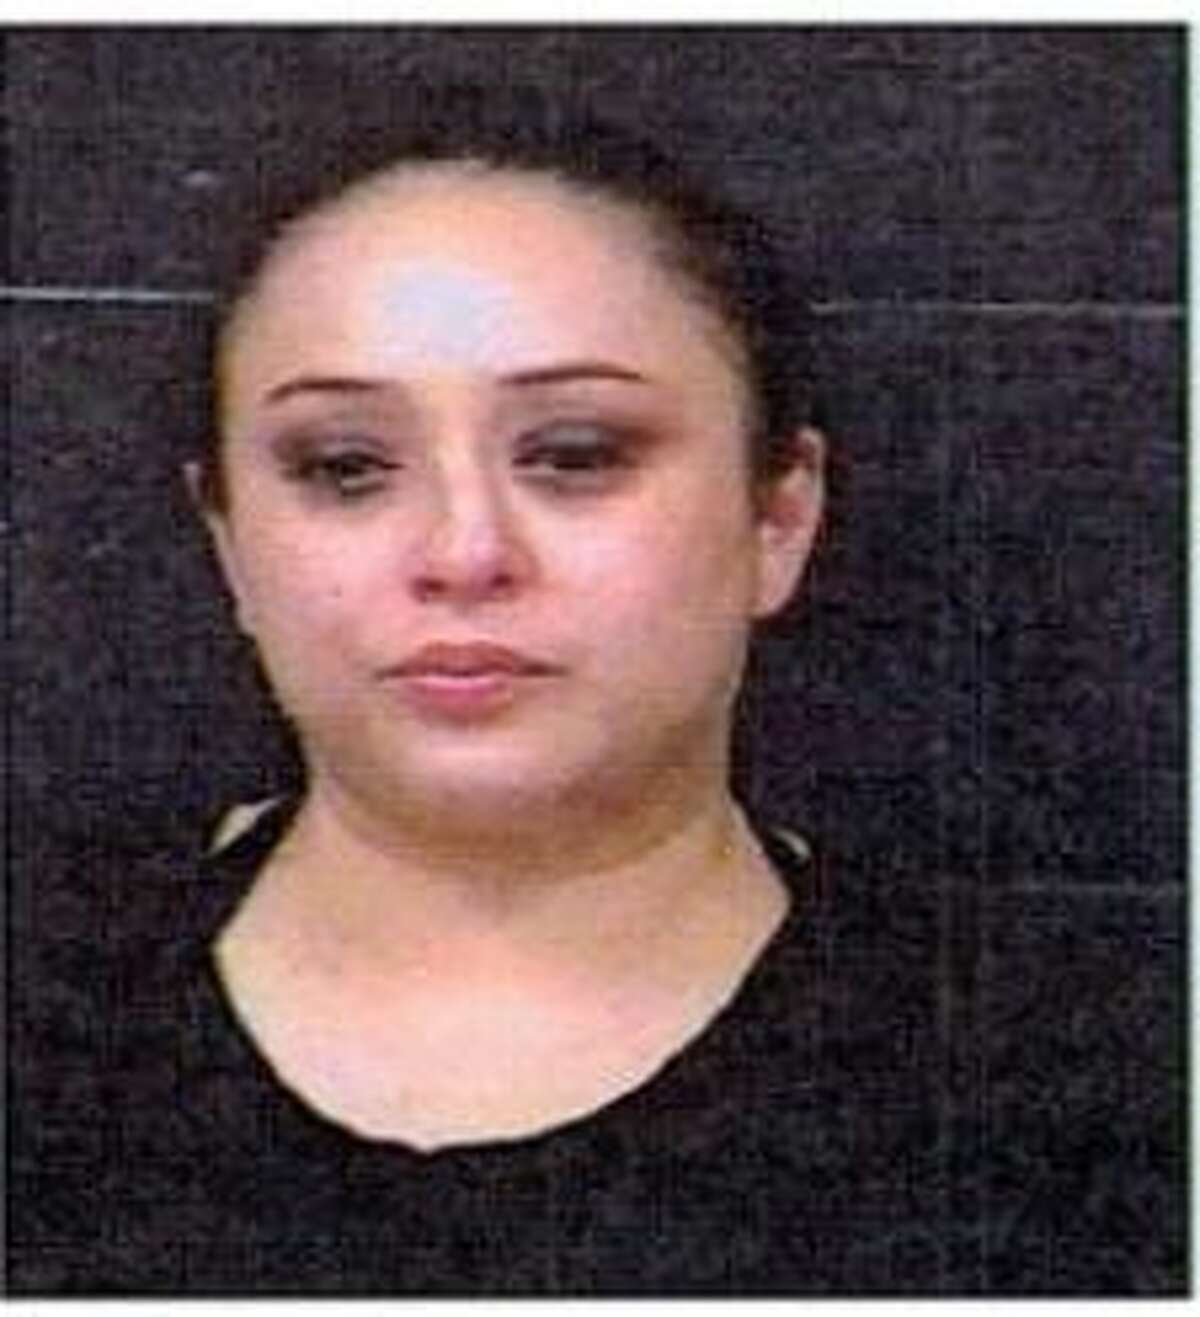 Claudia E Leal was charged with driving while intoxicated with a child under 15 years of age.